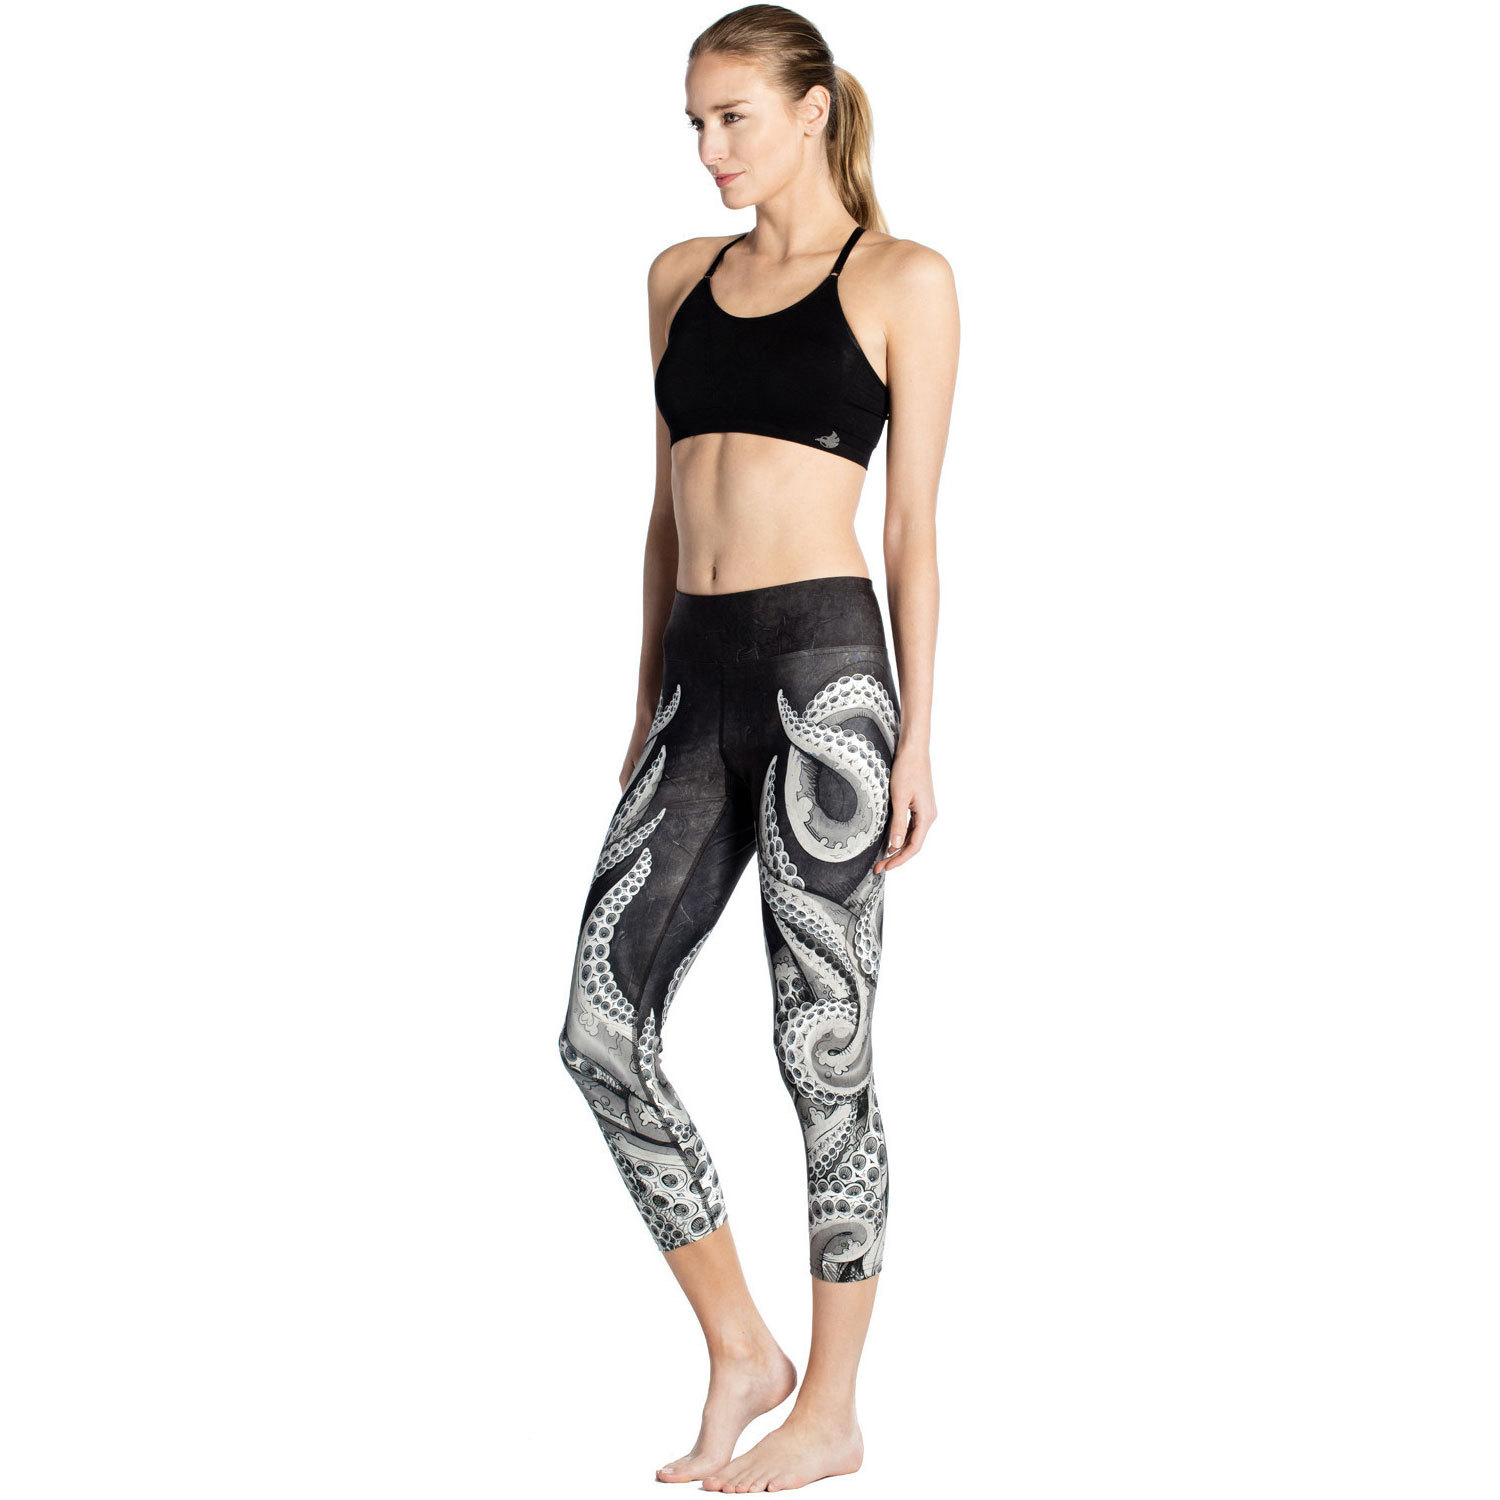 Octopus Black Bottom New Slim S Breath Running Sweat Absorbing Women's Seven-point Lady Pants Leggings